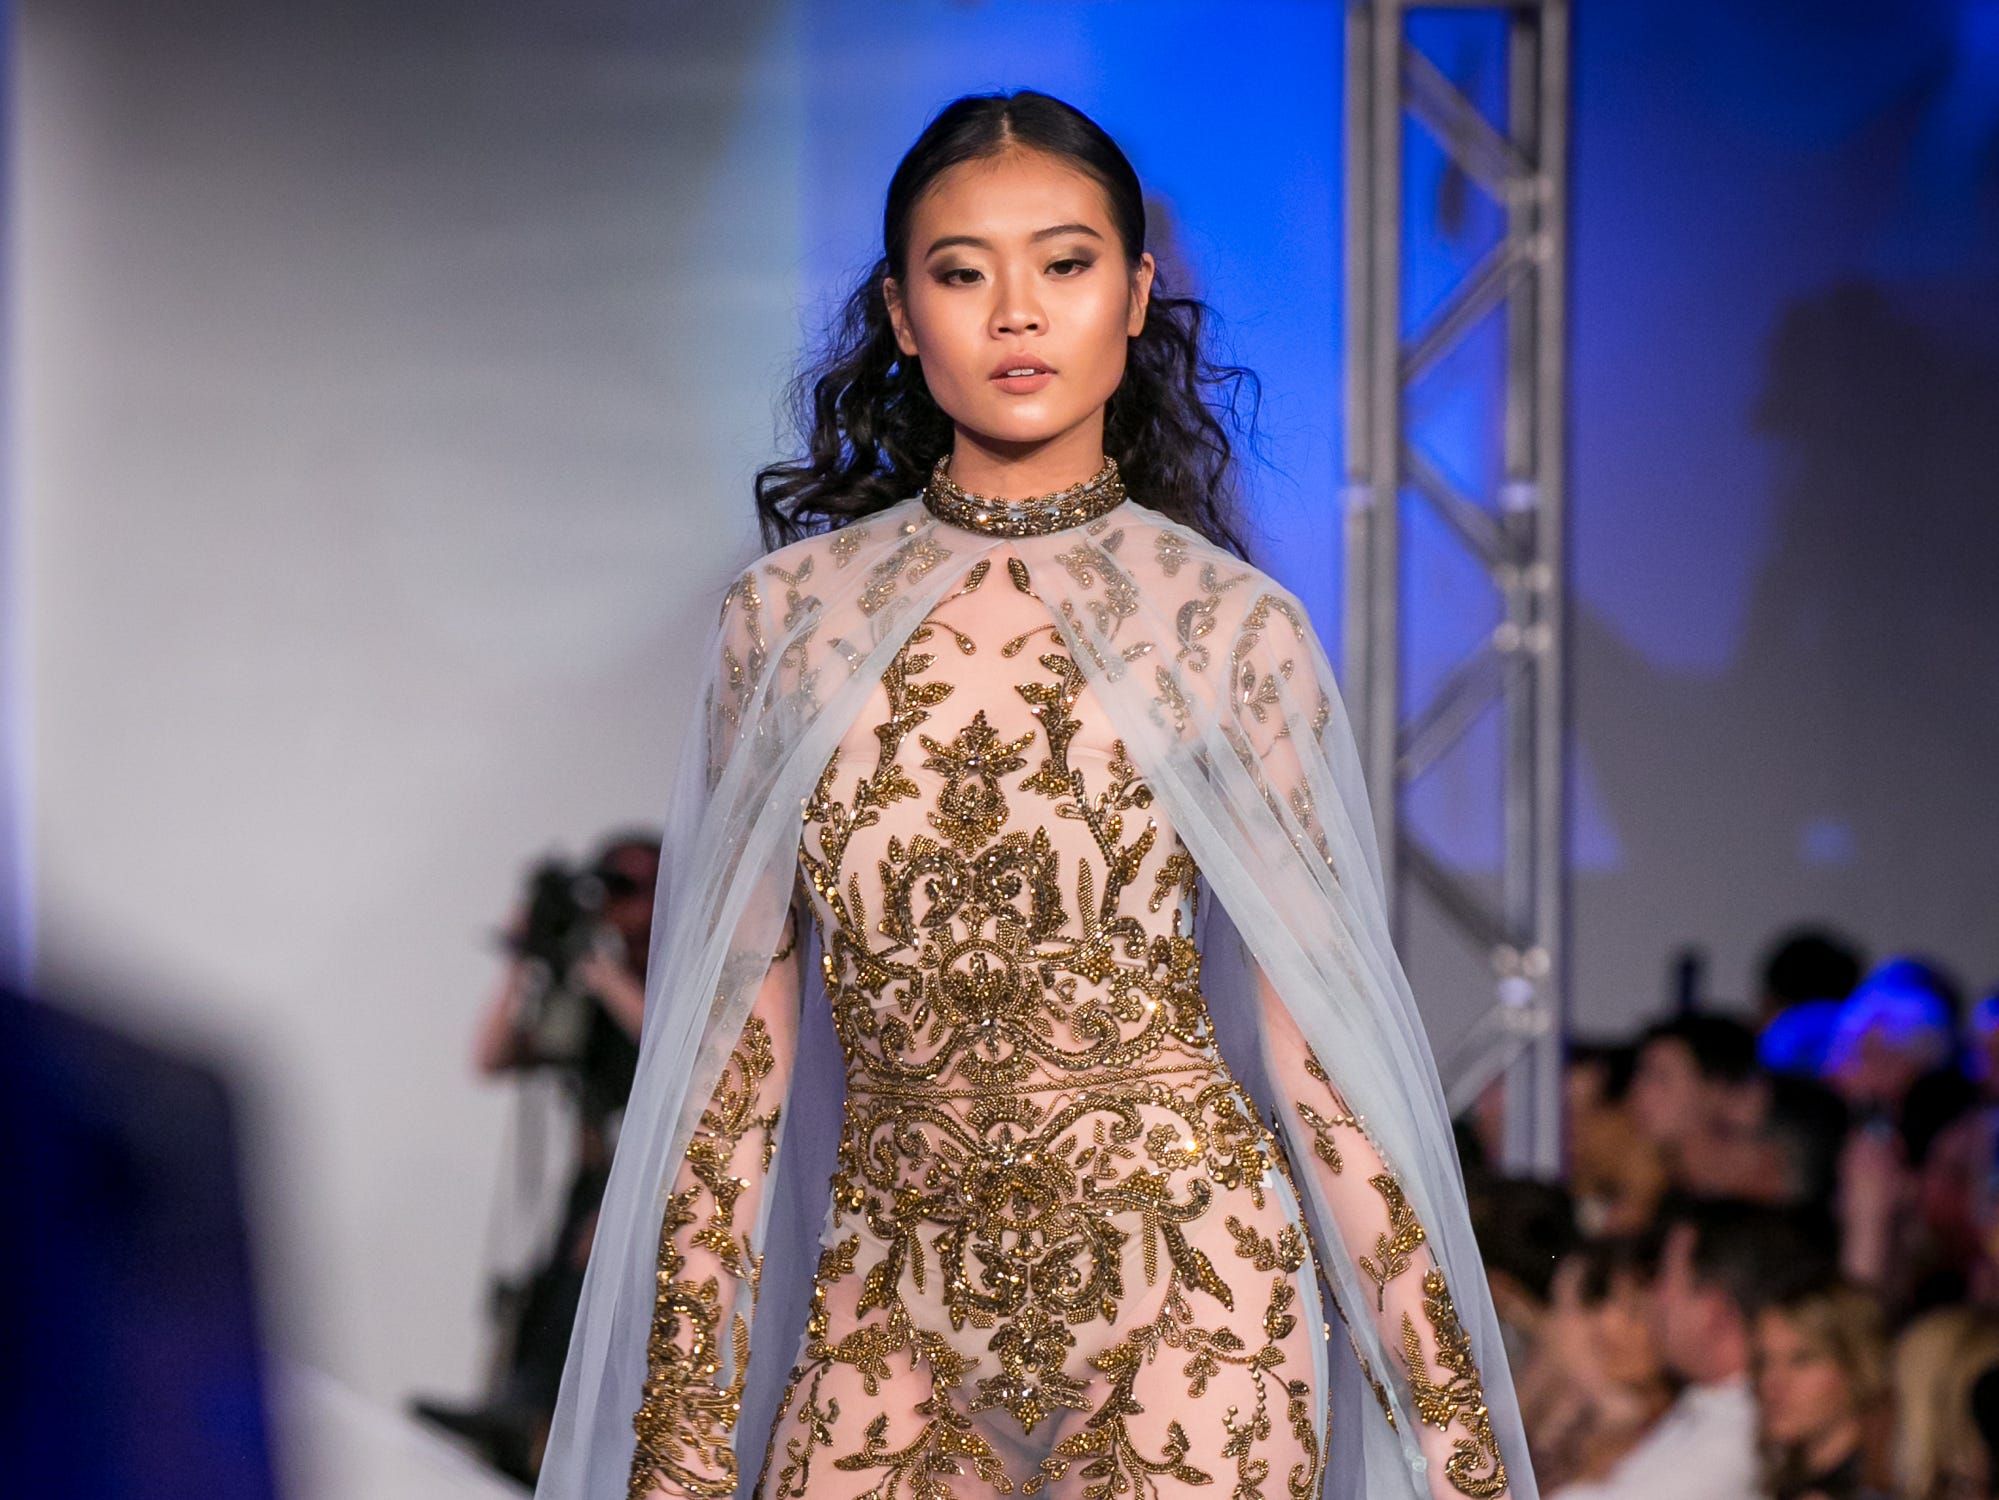 Yas Couture's runway during Phoenix Fashion Week at Talking Stick Resort in Scottsdale on Saturday, October 20, 2018.